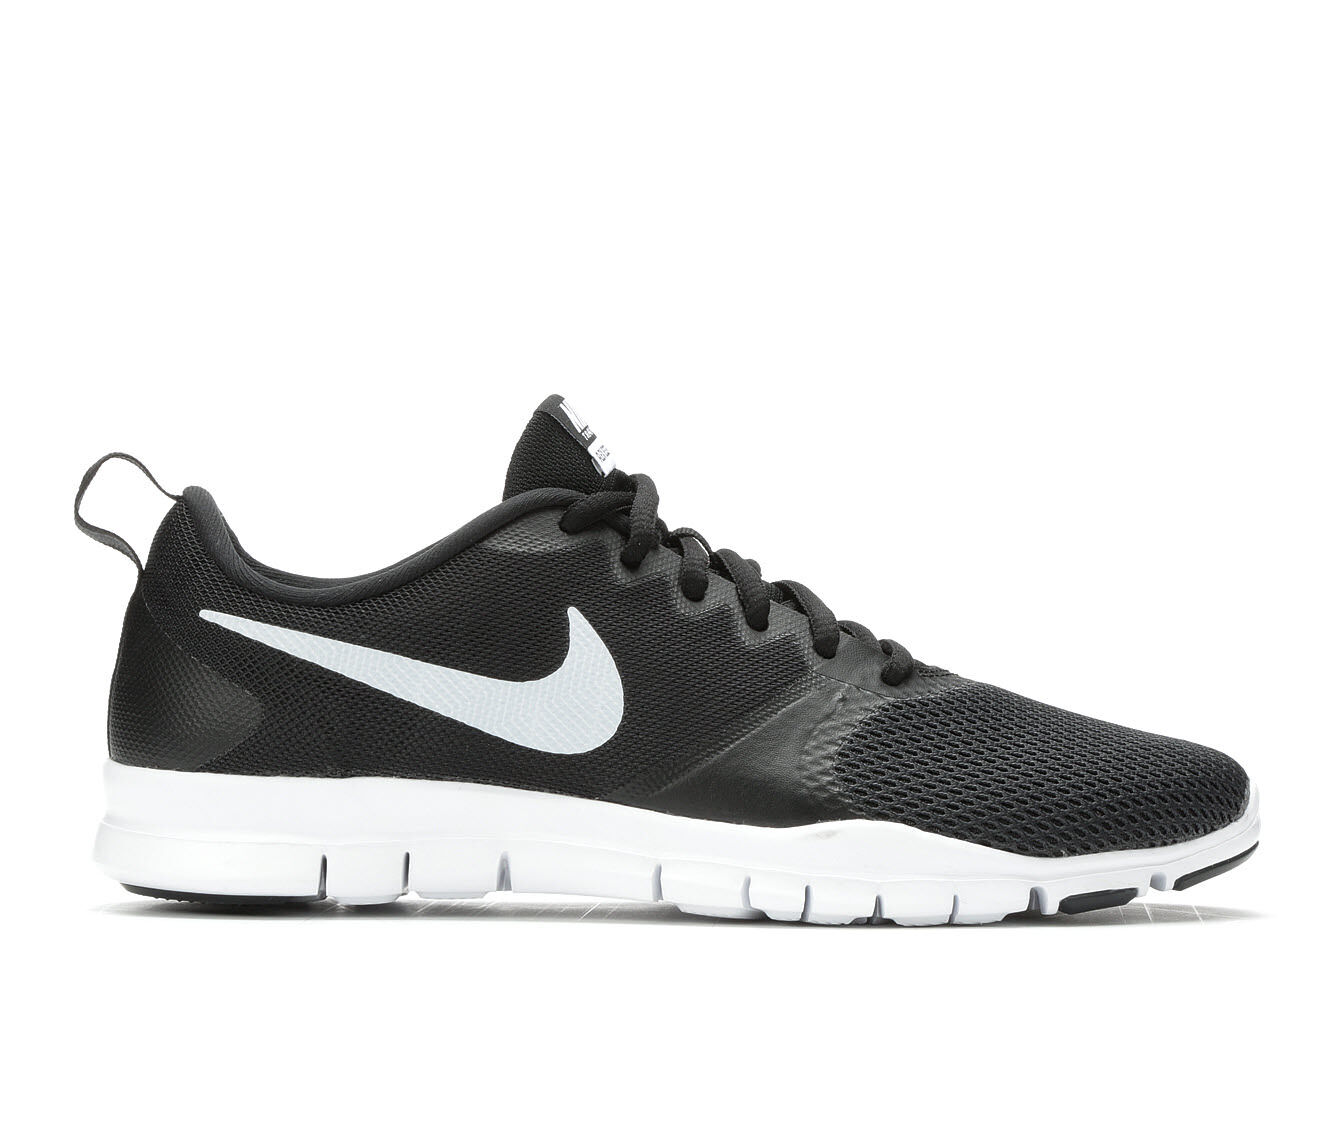 find authentic Women's Nike Flex Essential Training Shoes Black/Anth/Wht